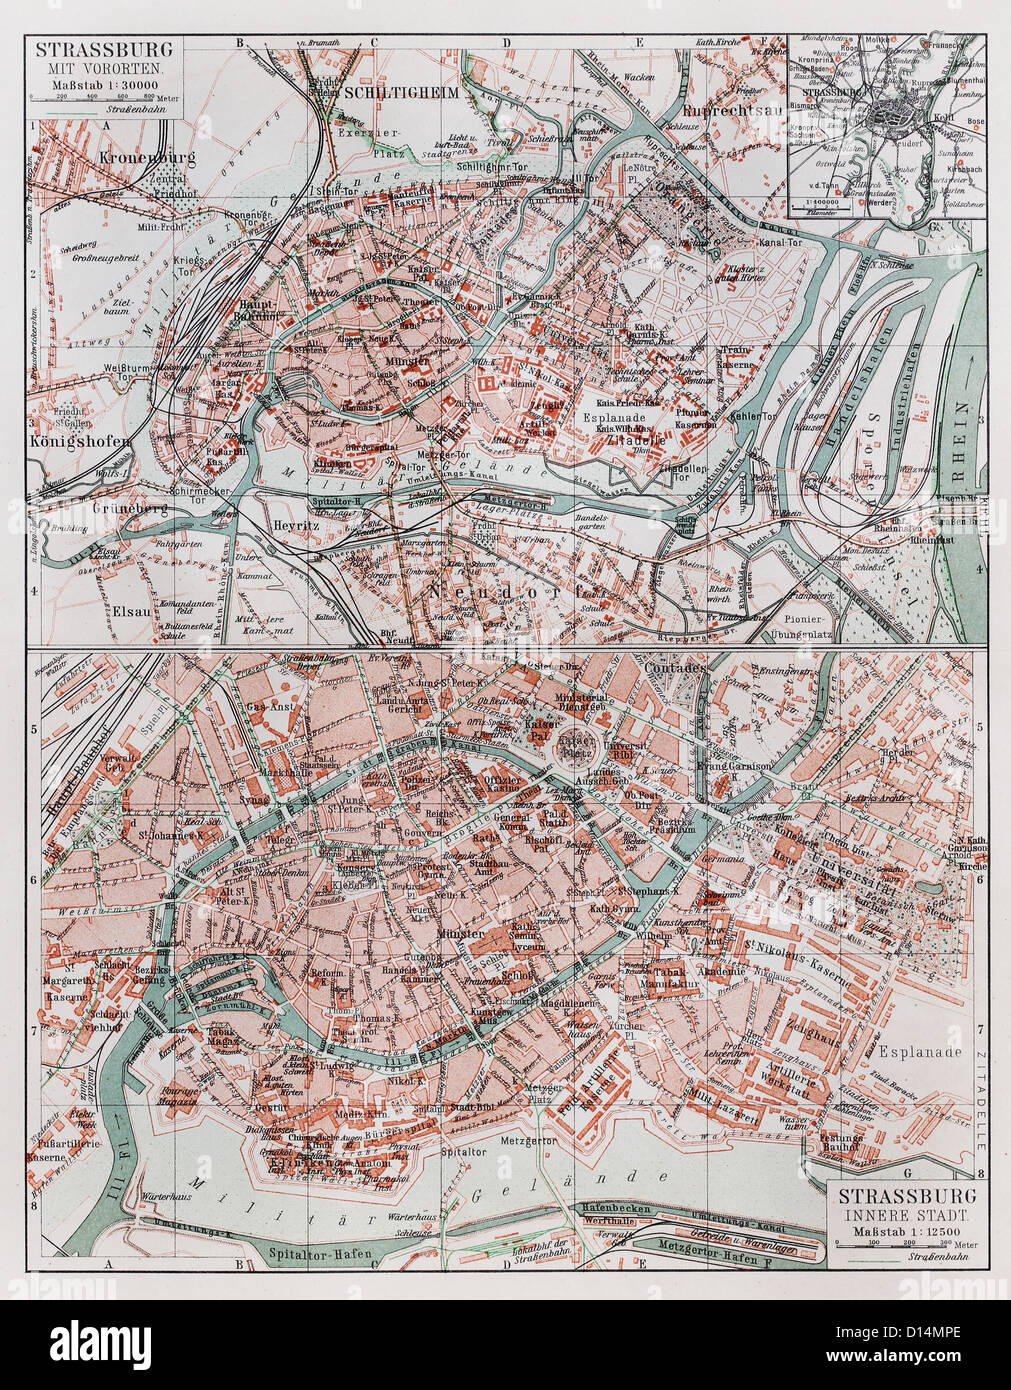 Vintage map of Strasbourg at the end of 19th century - Stock Image